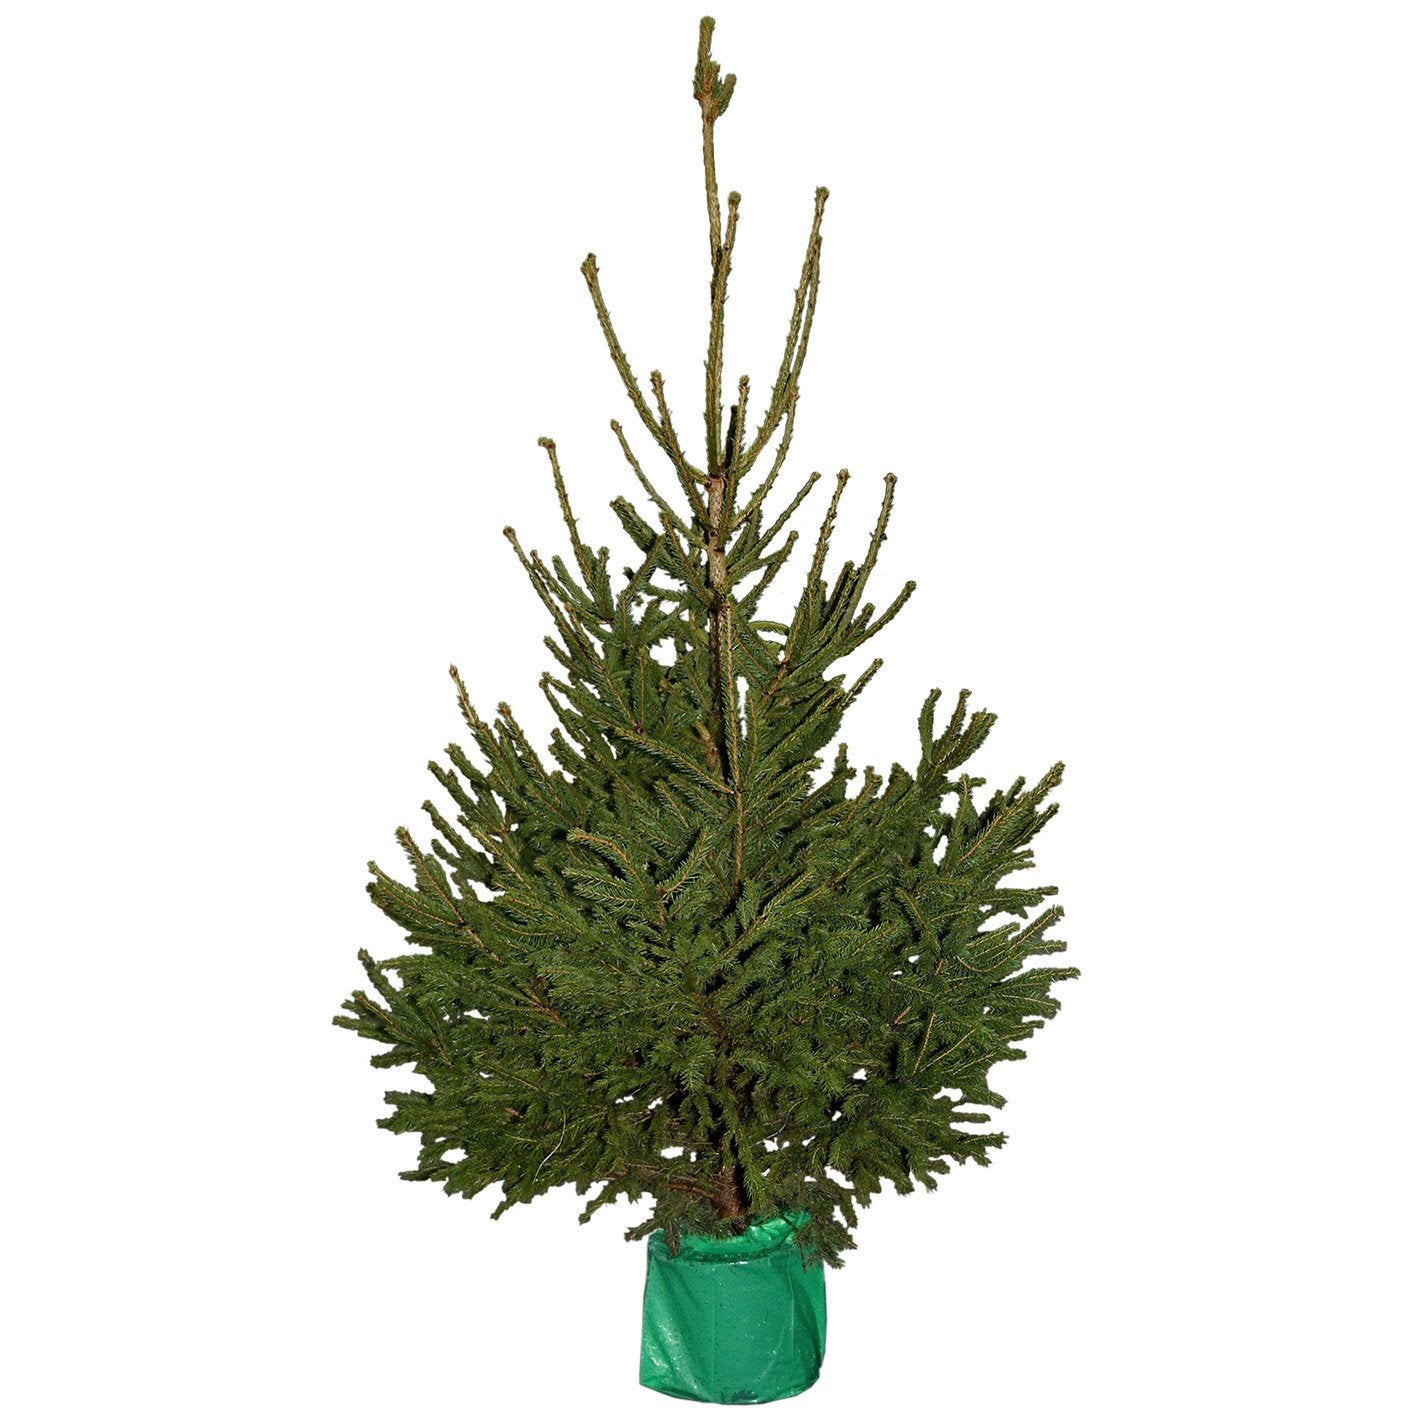 sapin de no l naturel epic a en pot hauteur de 100 125 cm leroy merlin